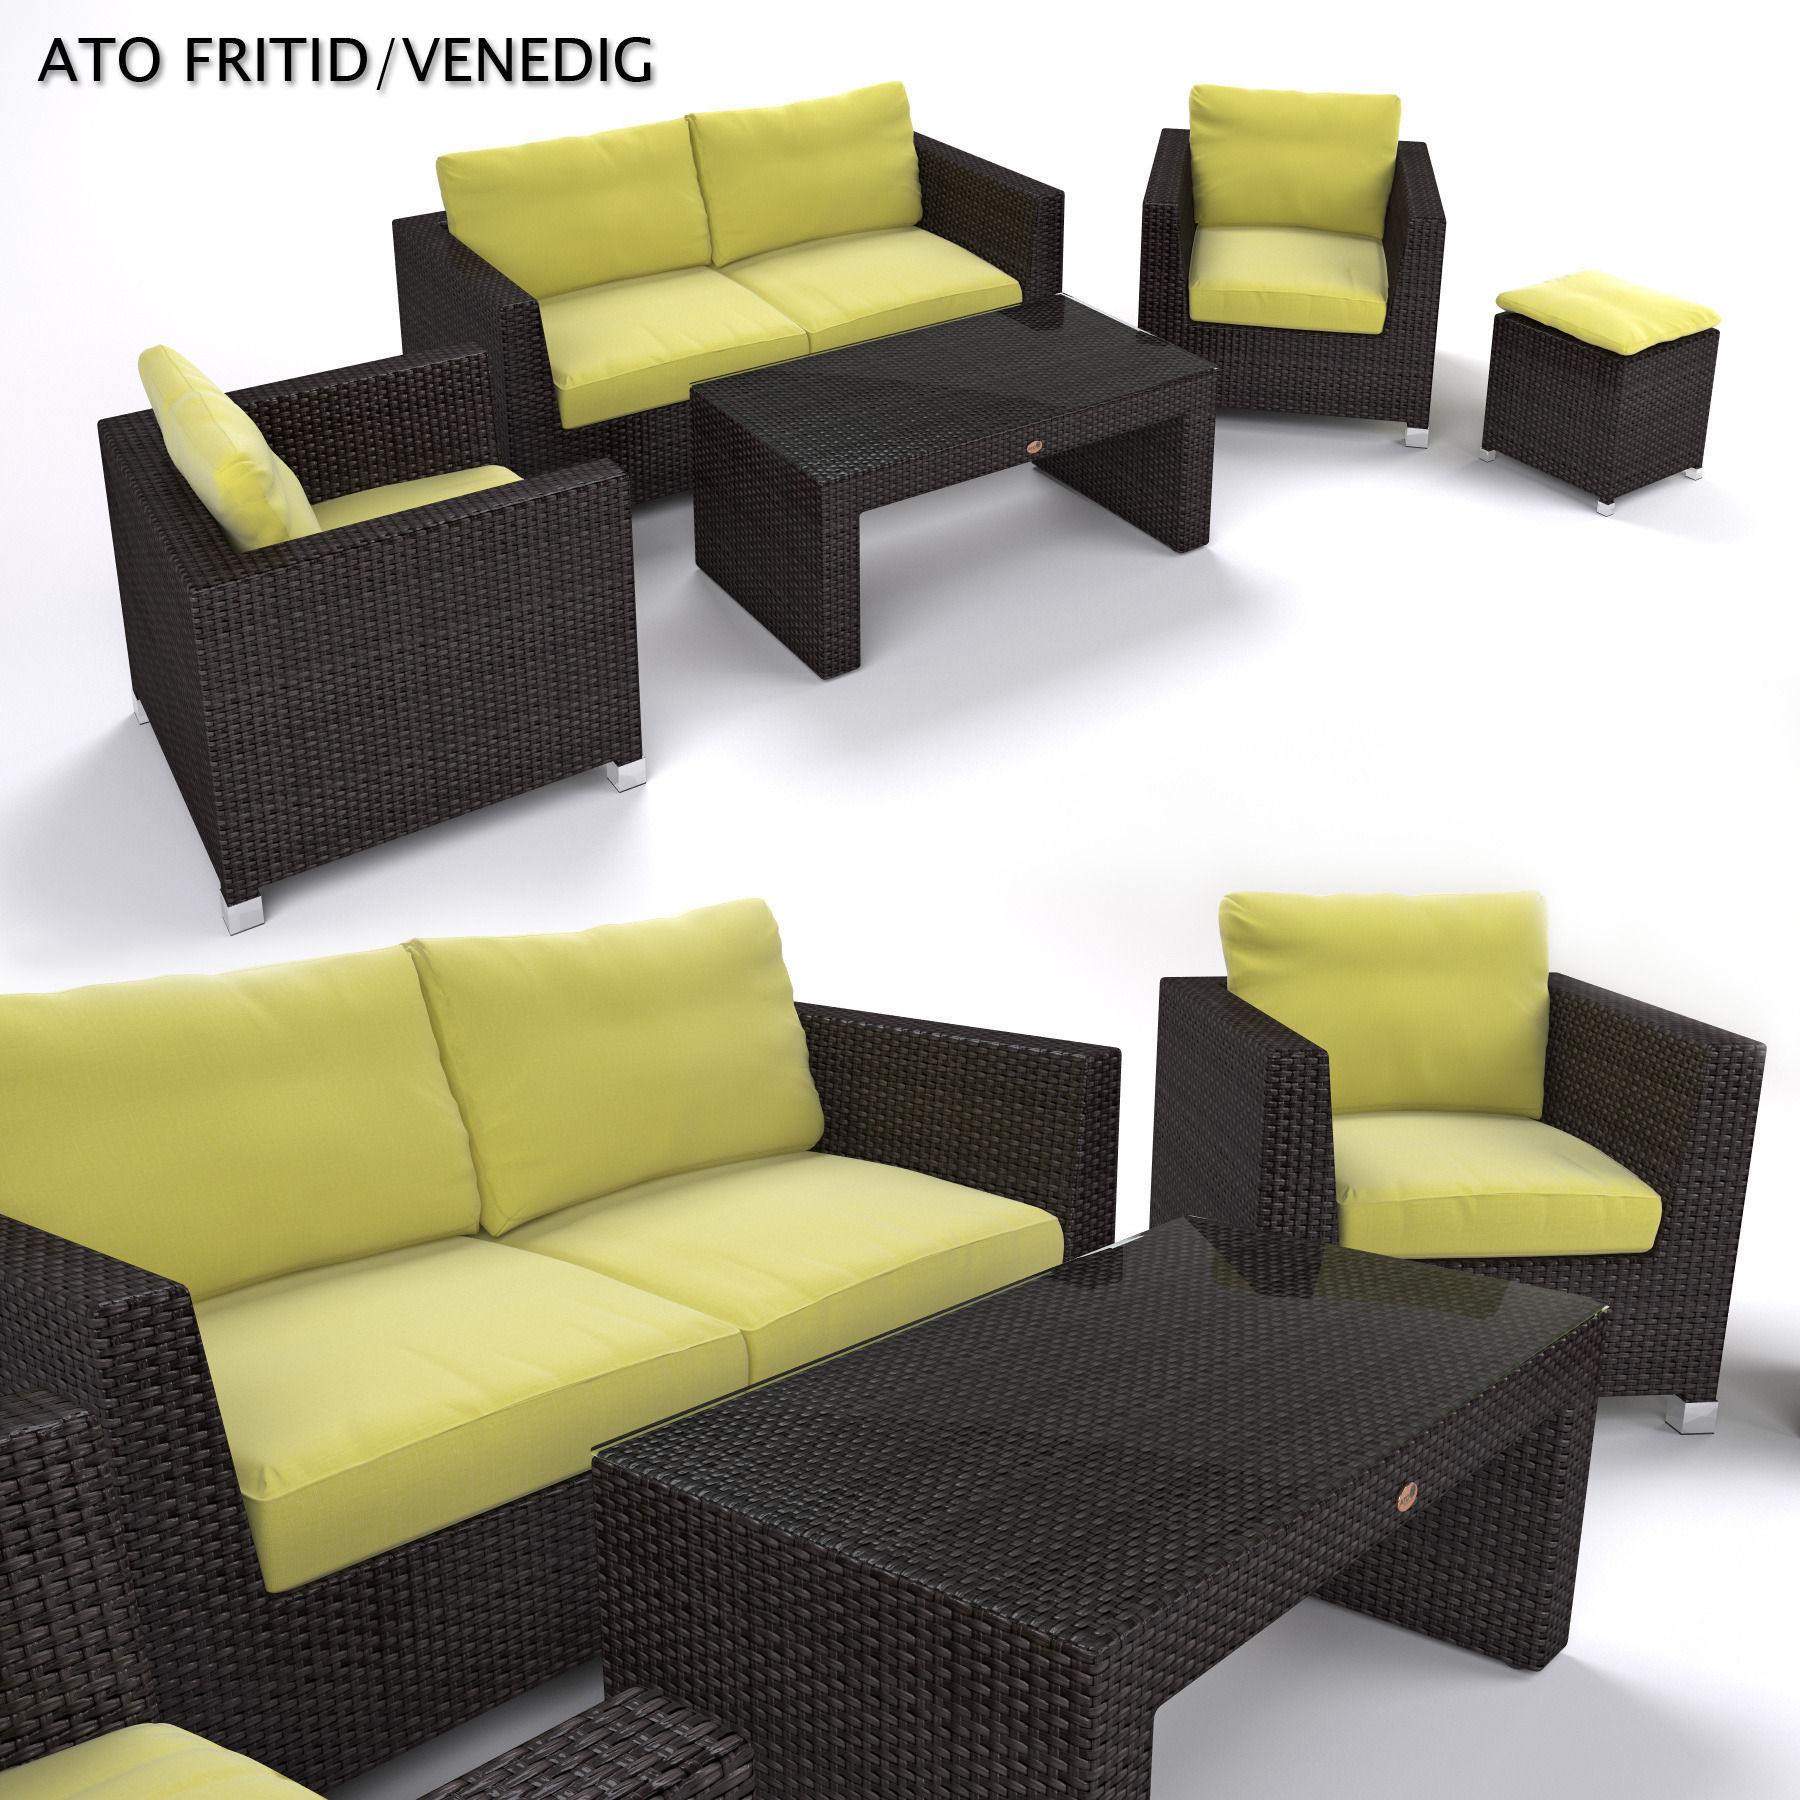 Delicieux Garden Furniture   Synthetic Rattan Set   Ato Venedig 3d Model Max Obj Fbx  Mtl 1 ...